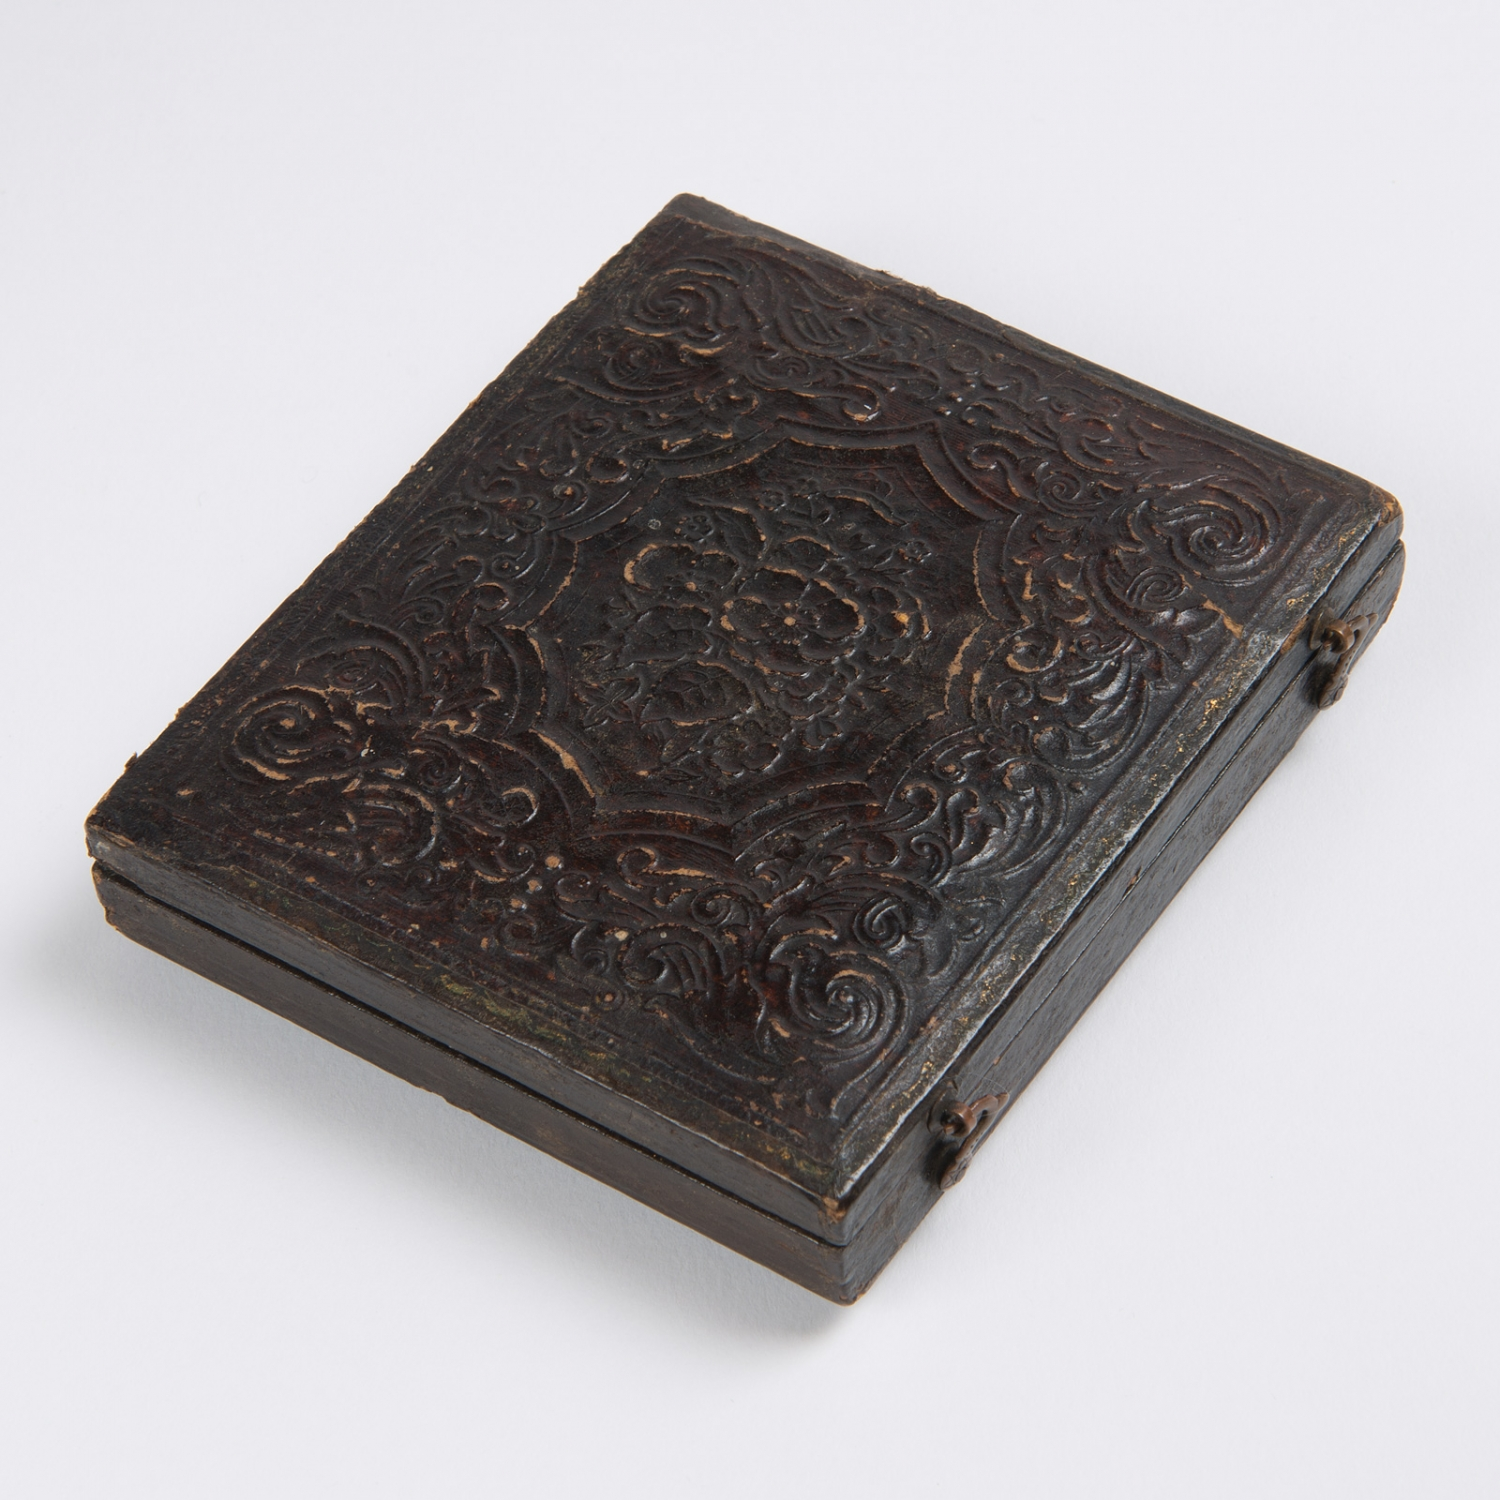 Case with floral decoration, containing an ambrotype portrait photograph of Kenneth McKenzie, circa 1860